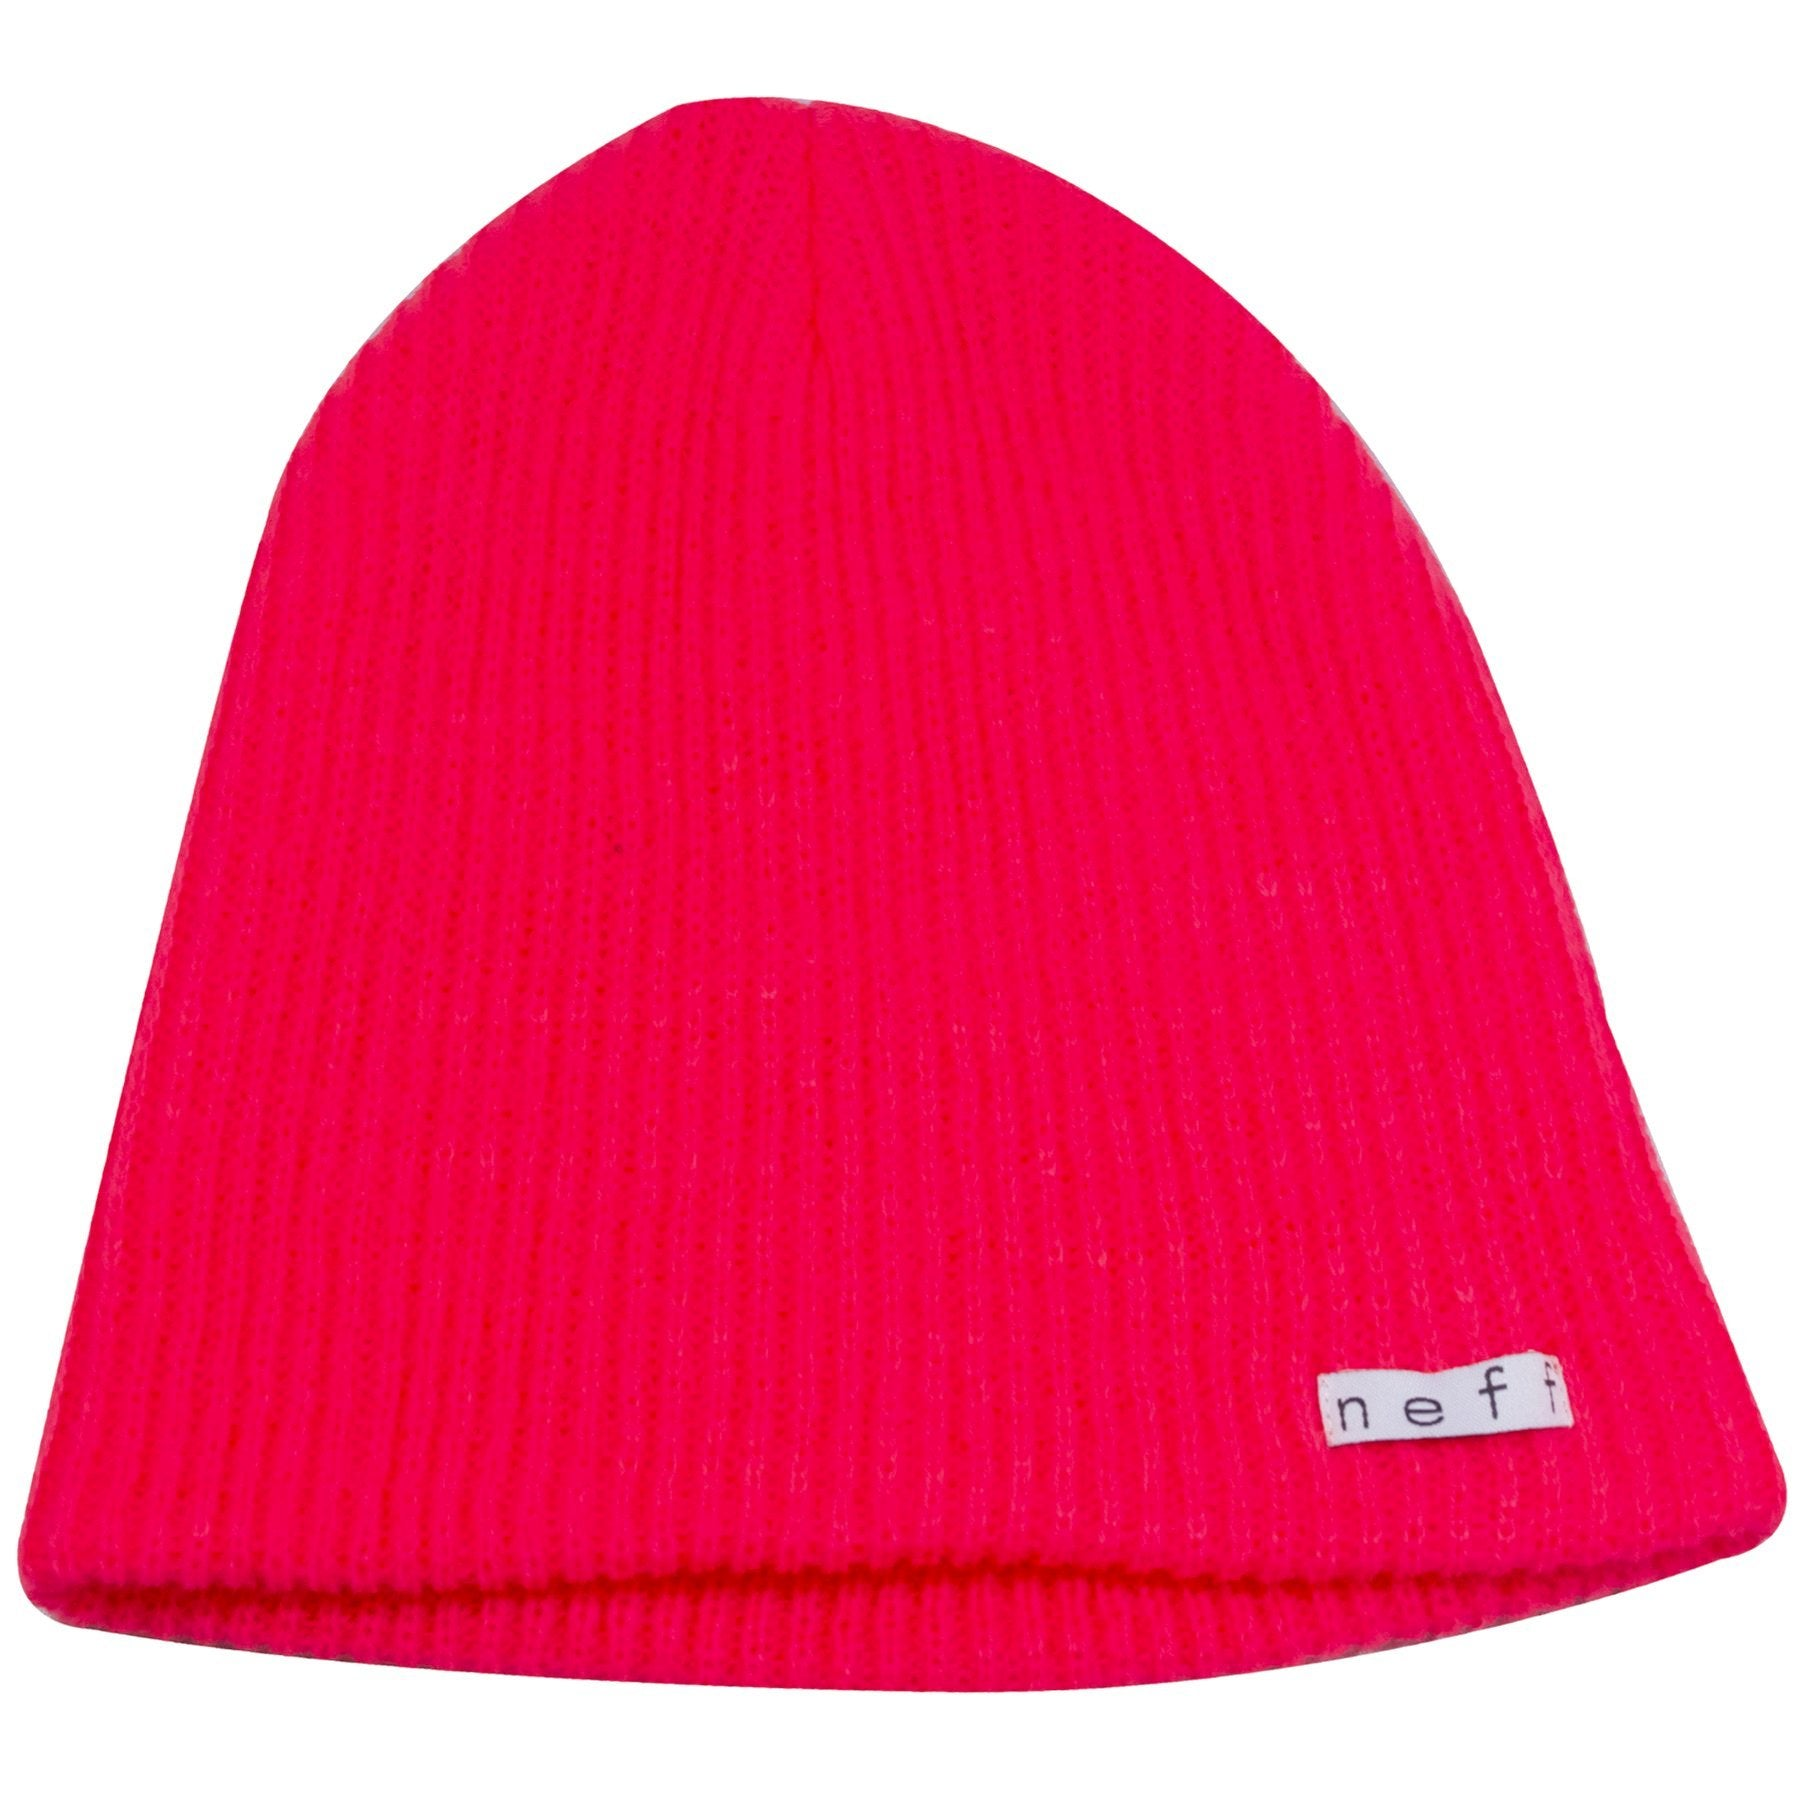 on the front right corner of the Neff Neon Red Daily Beanie is a tag that 7e81b959ce1